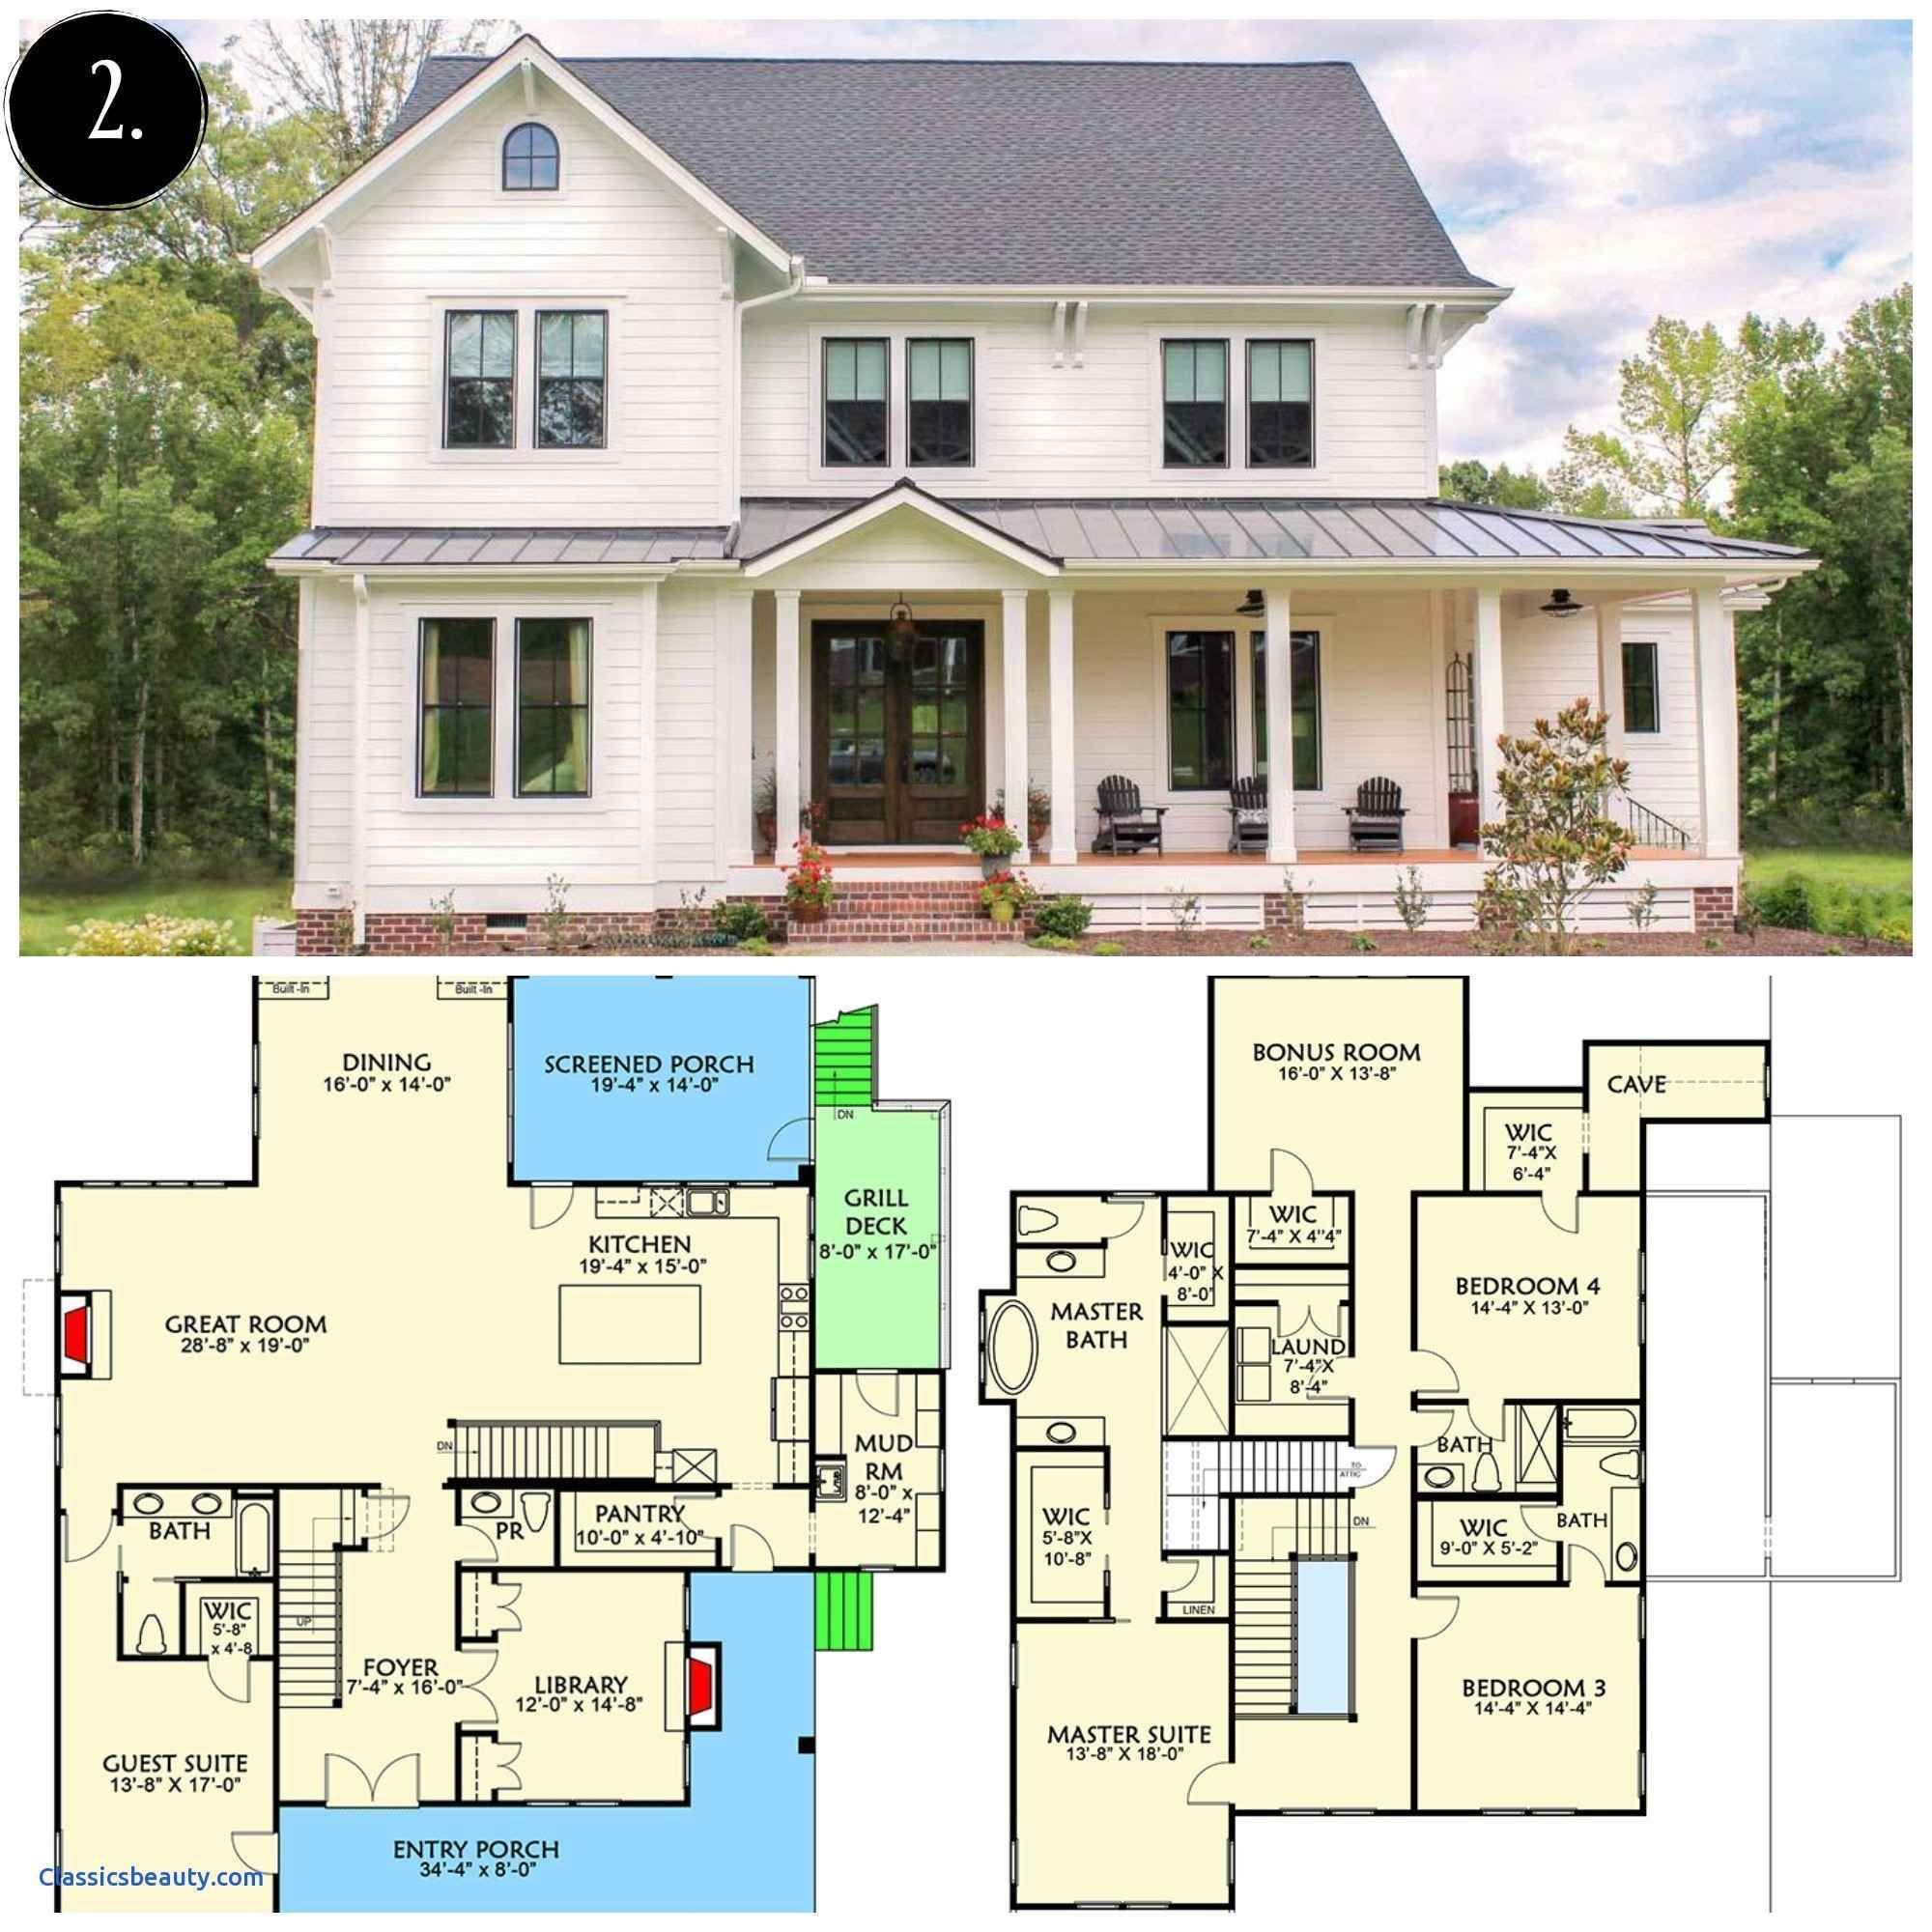 Small Modern Farmhouse Plans And Two Storey House Plans With Triple Garage Luxury Modern Modern Farmhouse Floorplan Farmhouse Floor Plans House Plans Farmhouse